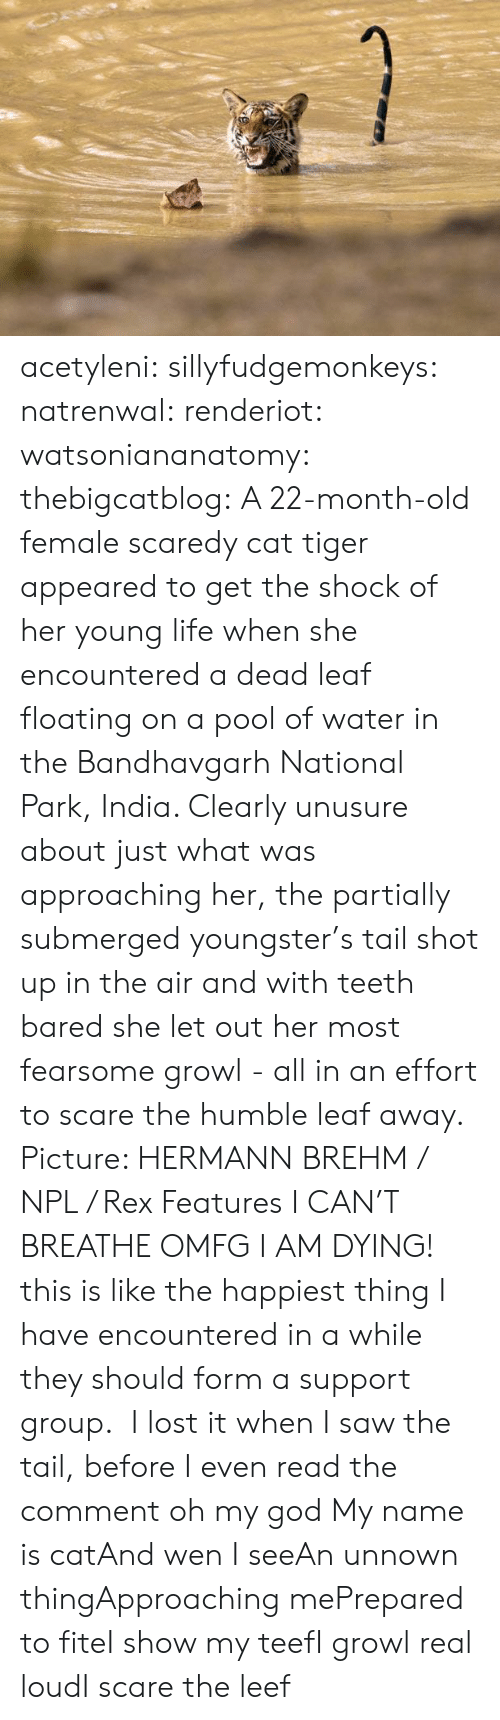 God, Life, and Oh My God: acetyleni:  sillyfudgemonkeys:  natrenwal:  renderiot:  watsoniananatomy:  thebigcatblog:  A 22-month-old female scaredy cat tiger appeared to get the shock of her young life when she encountered a dead leaf floating on a pool of water in the Bandhavgarh National Park, India. Clearly unusure about just what was approaching her, the partially submerged youngster's tail shot up in the air and with teeth bared she let out her most fearsome growl - all in an effort to scare the humble leaf away. Picture: HERMANN BREHM / NPL / Rex Features  I CAN'T BREATHE  OMFG I AM DYING! this is like the happiest thing I have encountered in a while   they should form a support group.   I lost it when I saw the tail, before I even read the comment oh my god  My name is catAnd wen I seeAn unnown thingApproaching mePrepared to fiteI show my teefI growl real loudI scare the leef